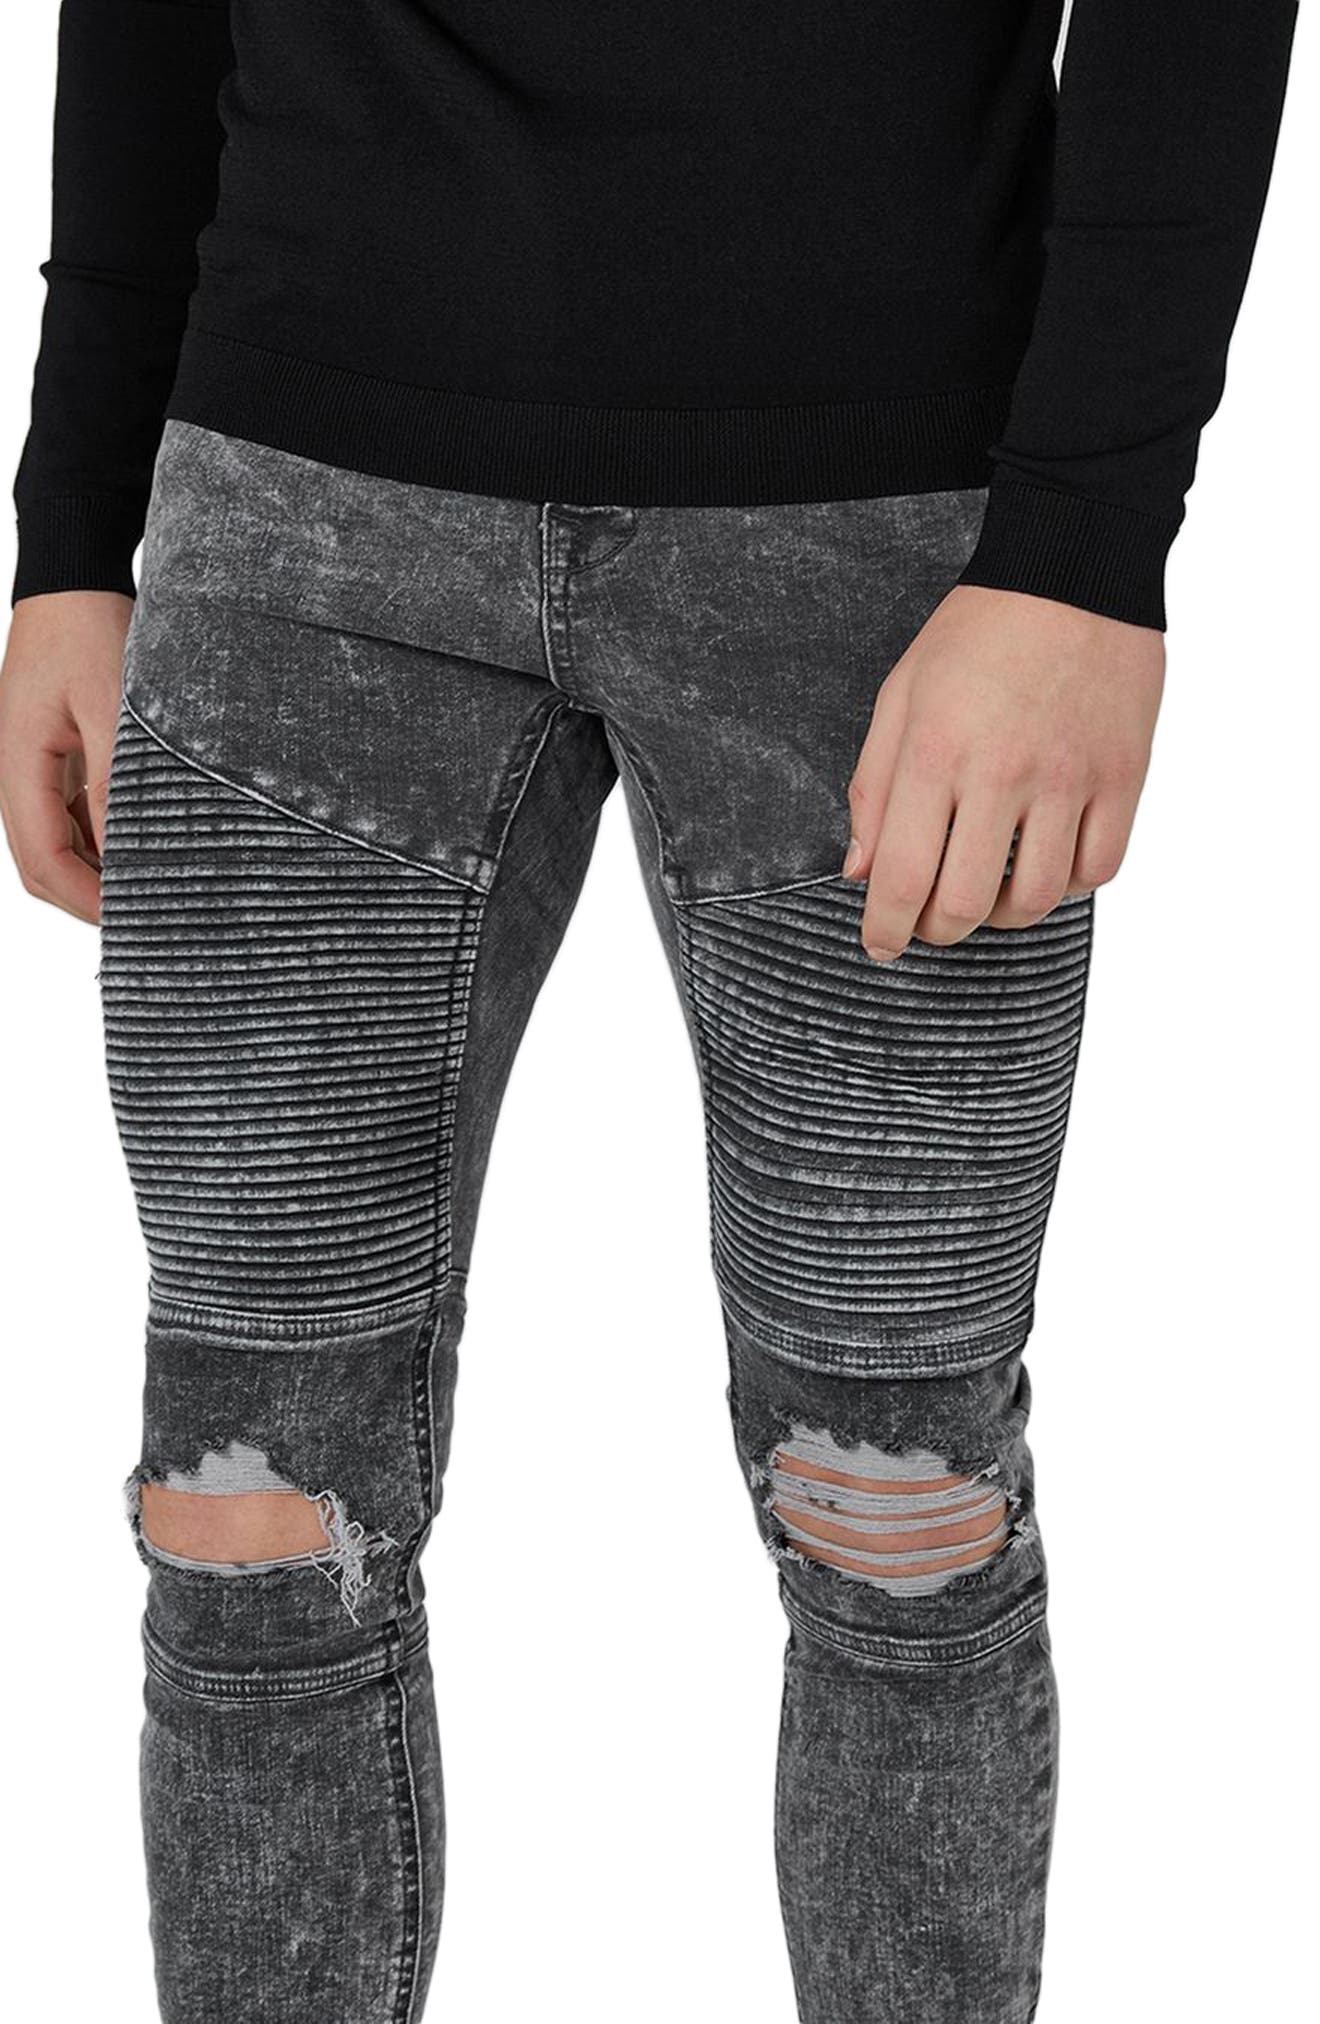 Acid Wash Spray-On Biker Jeans,                             Alternate thumbnail 3, color,                             020